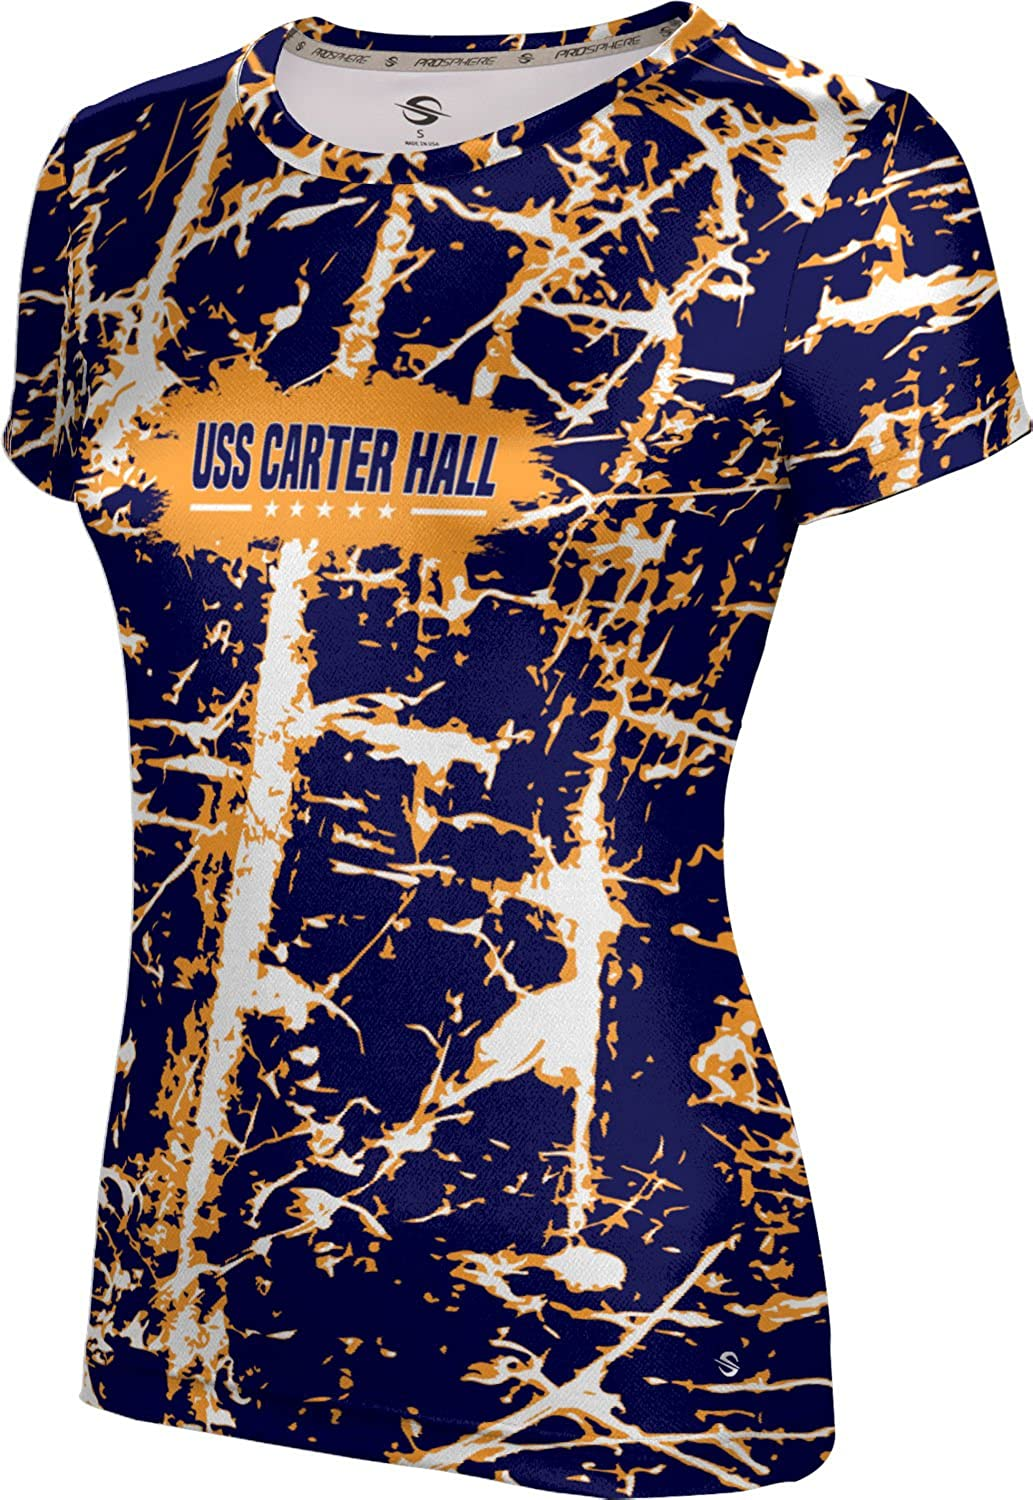 ProSphere Women's USS Carter Hall Military Distressed Tech Tee